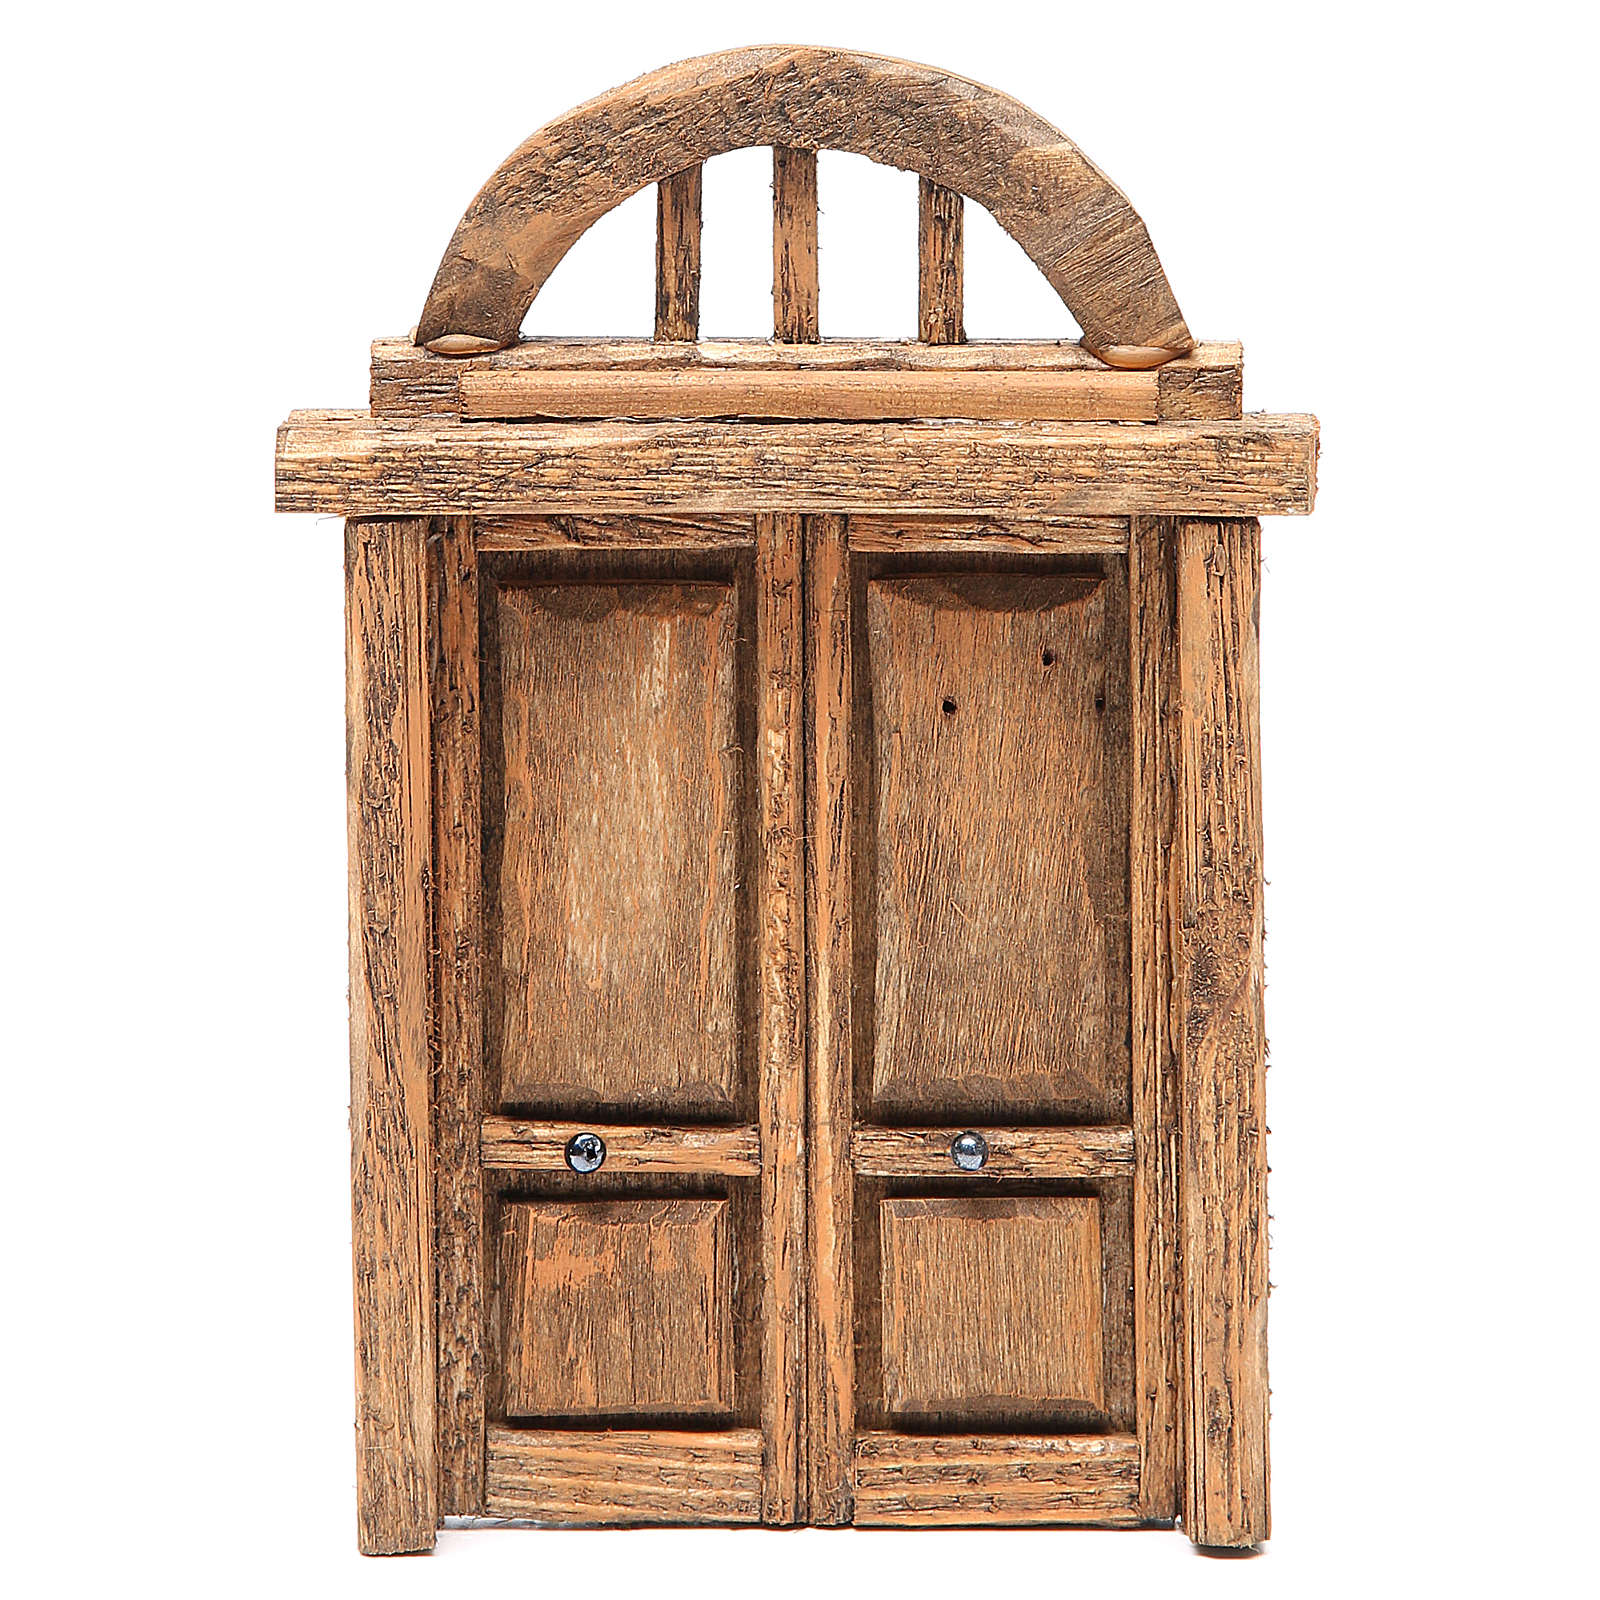 Arched door for front 18x12cm 4